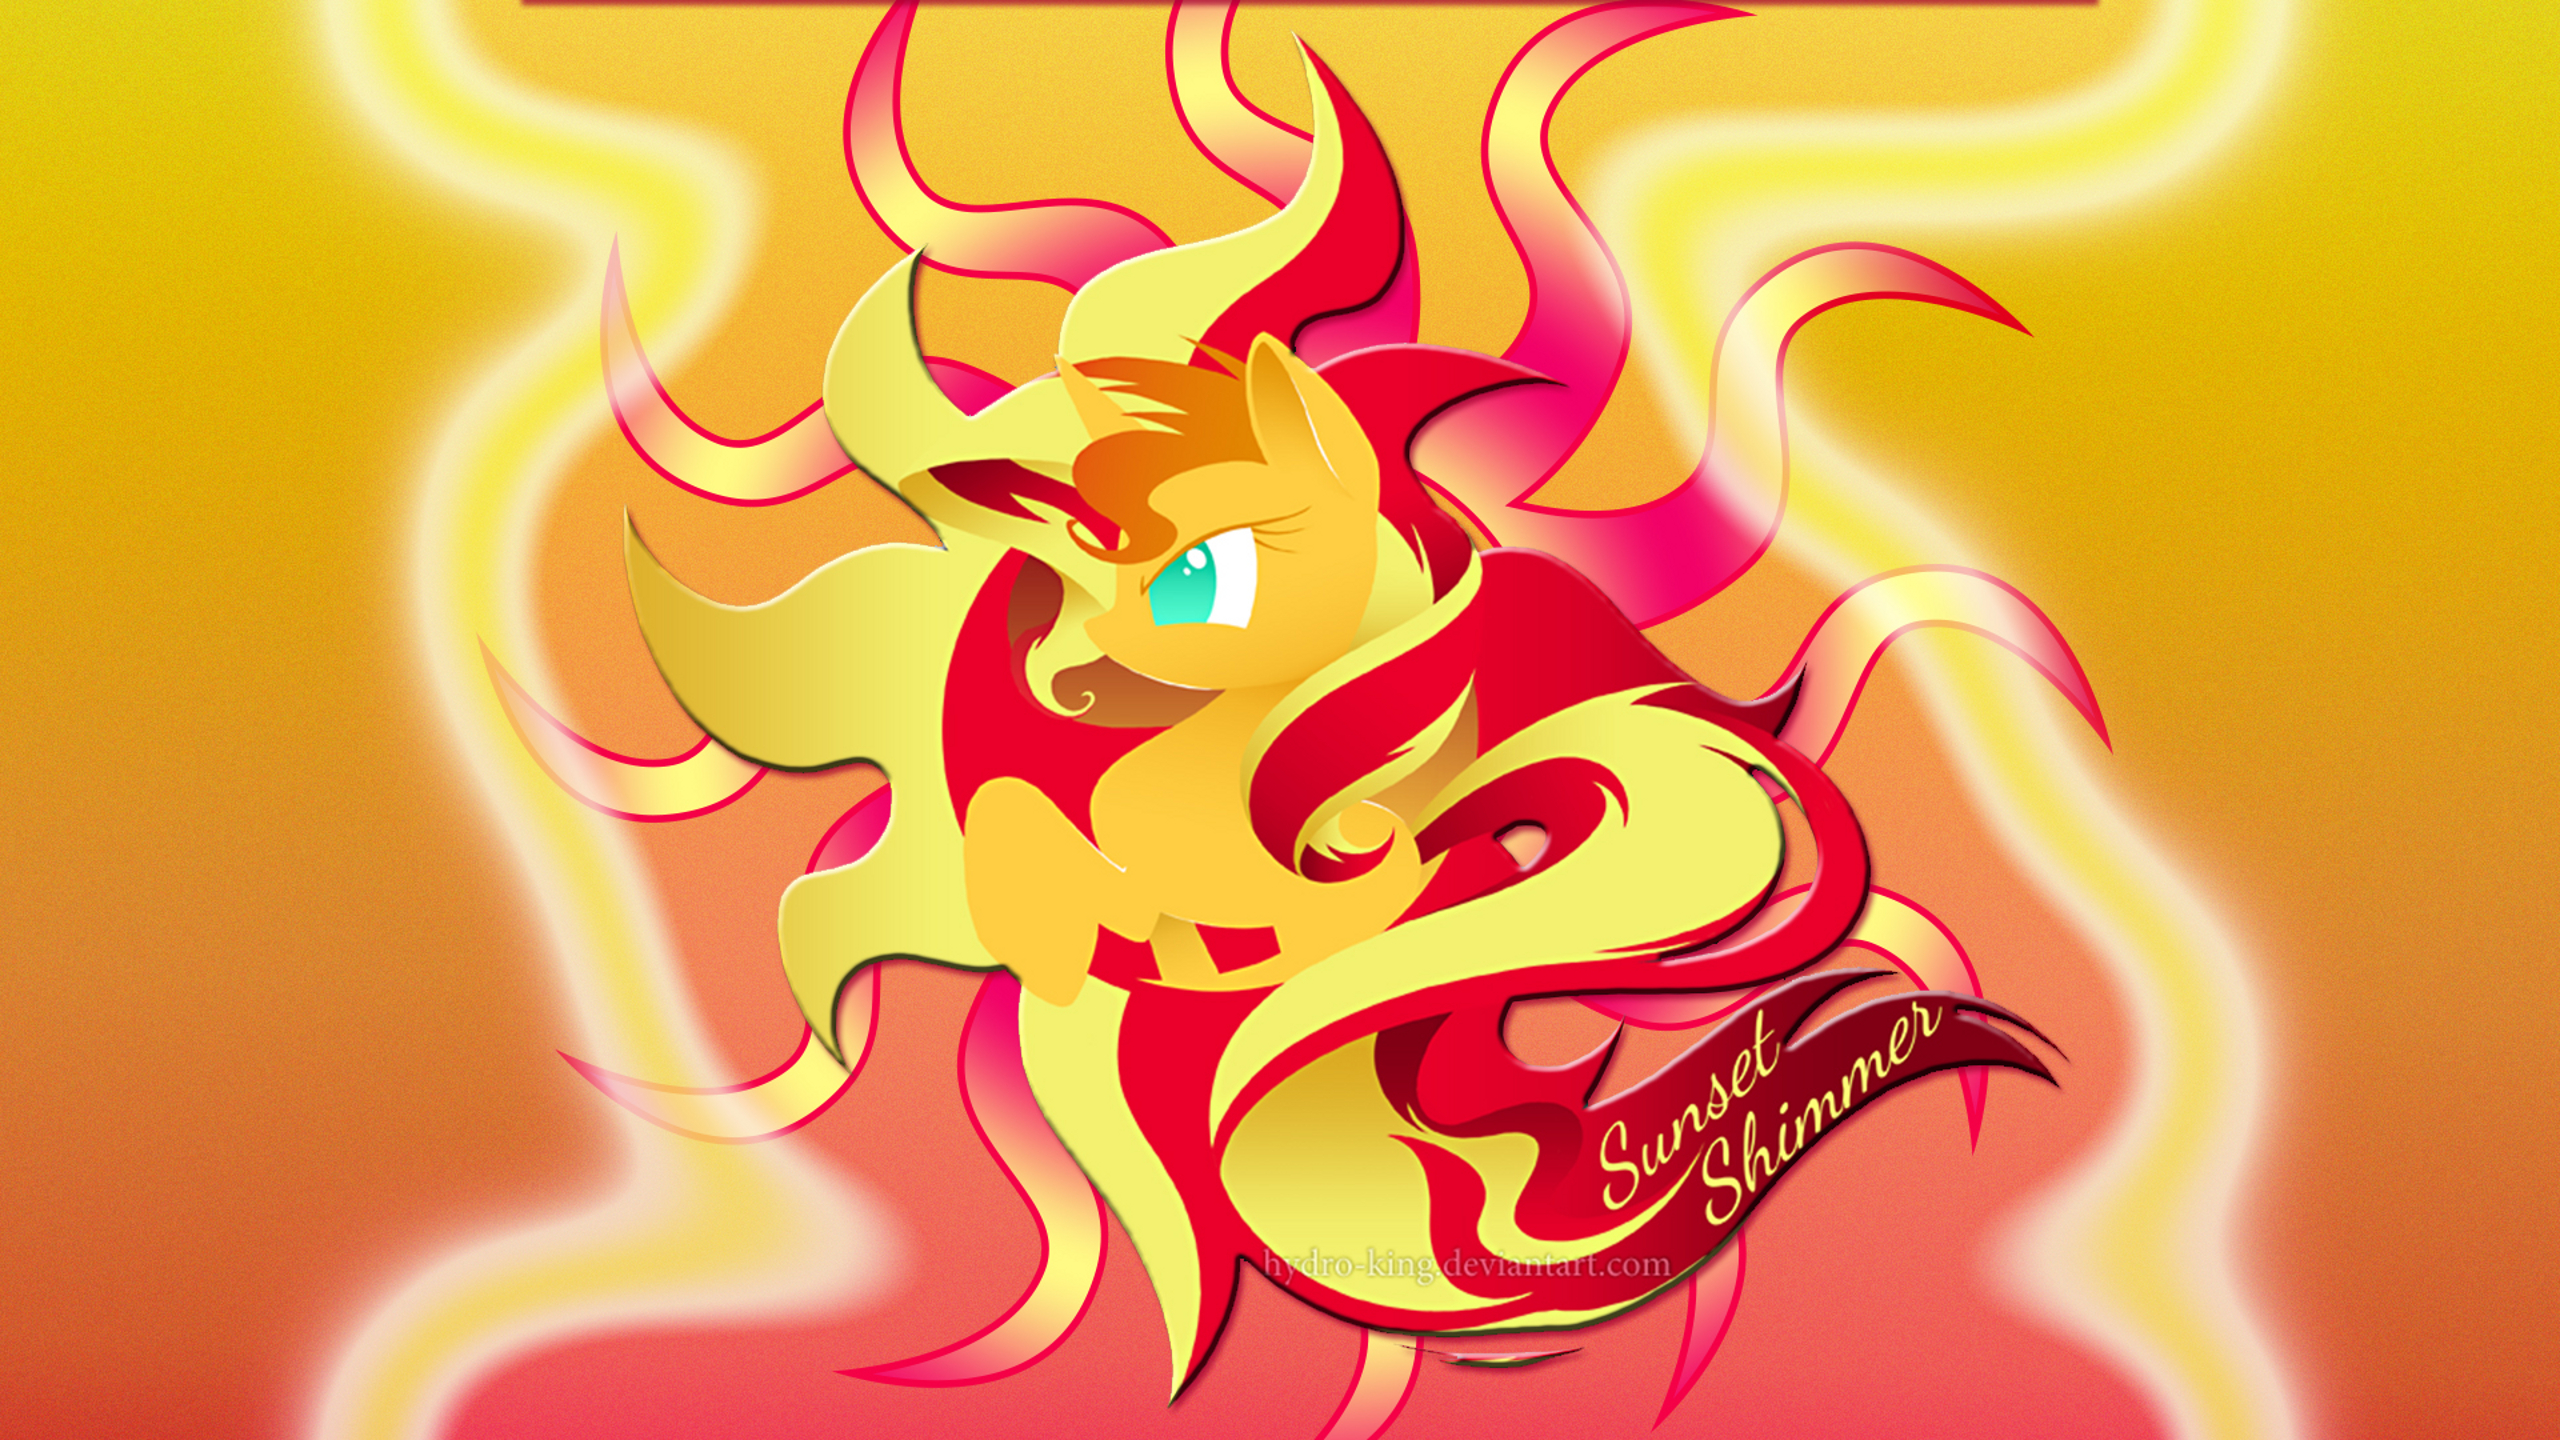 Wallpaper Logo Sunset Shimmer Imac 2560 X 1440 By Barrfind And Hydro King Vocaloid My Little Wallpaper The Wallpaper Source That Credits Artists